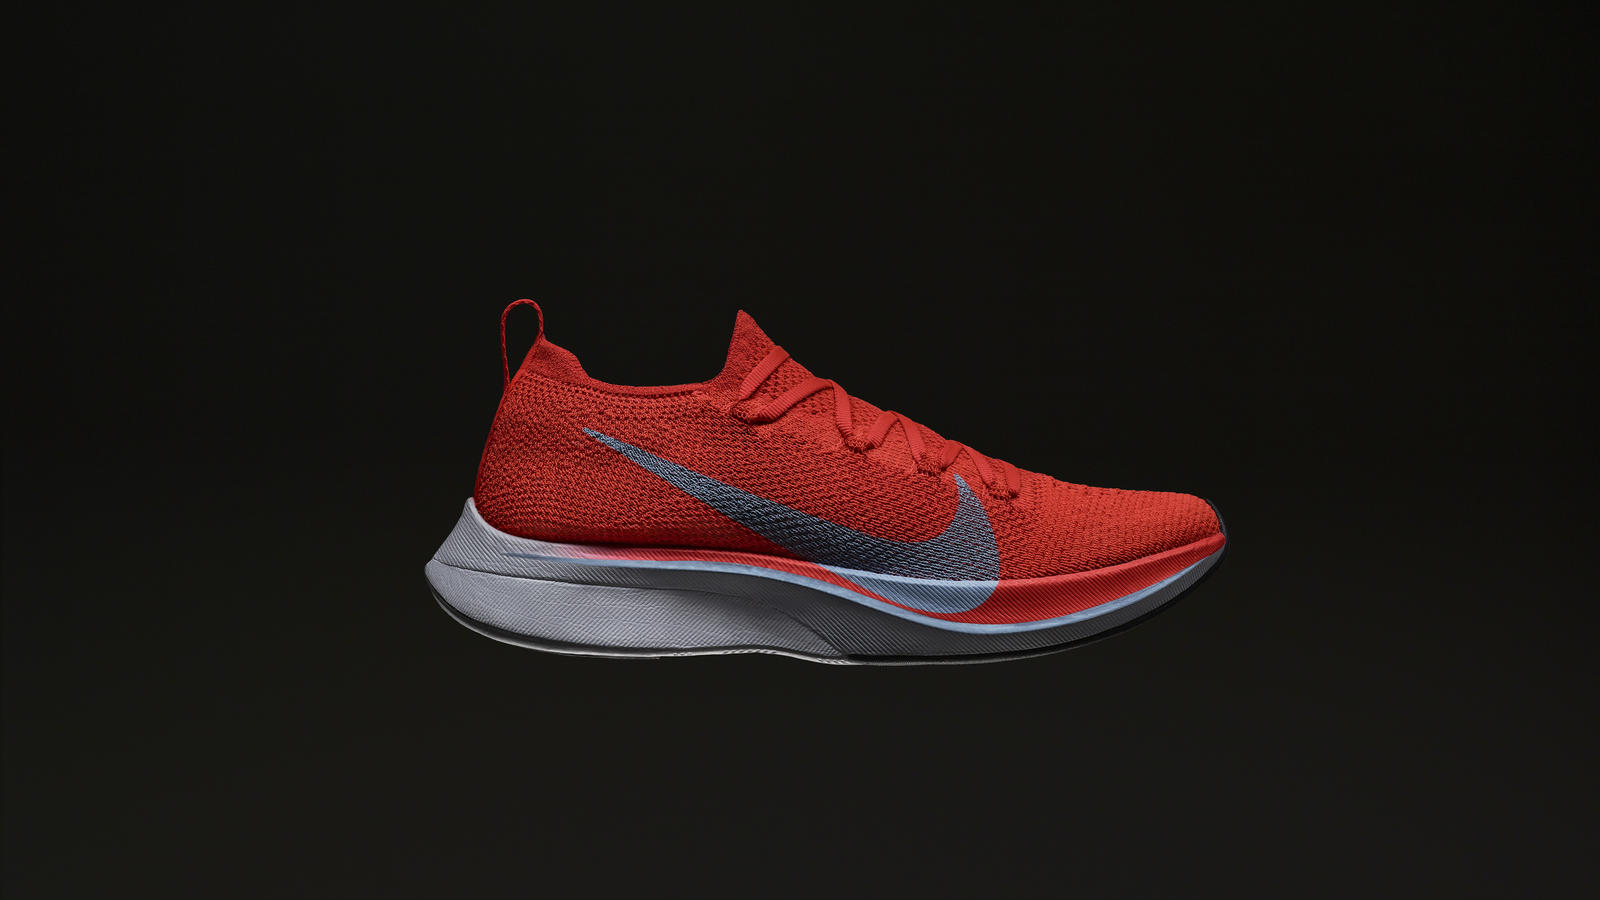 8ba3d35ff36 How to Get the Nike Zoom Vaporfly 4% - Nike News